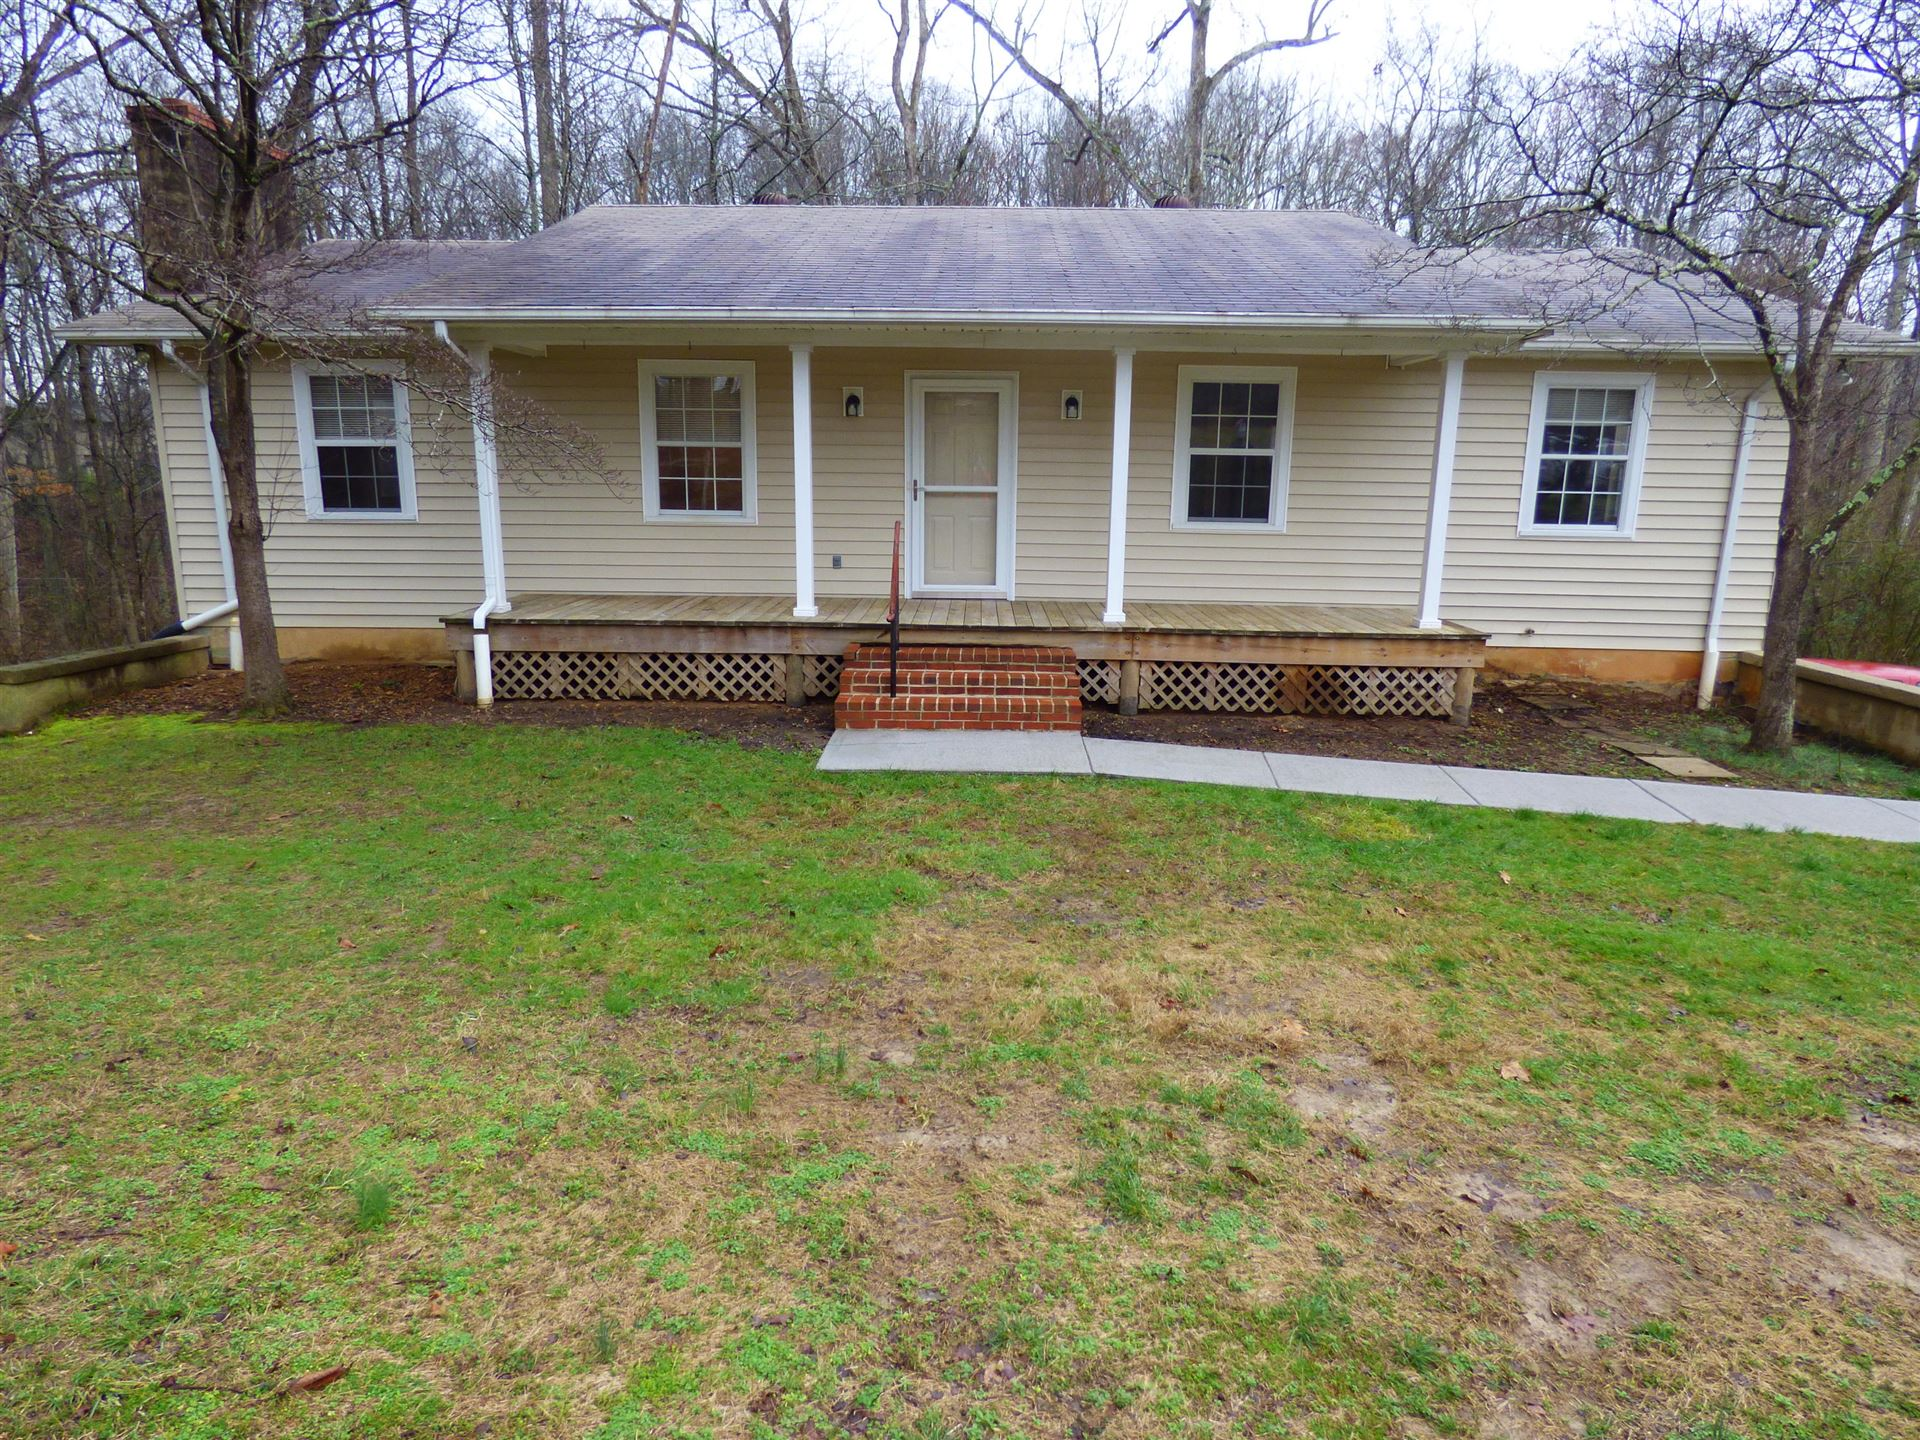 Photo of 2120 Woods Smith Rd, Knoxville, TN 37921 (MLS # 1108228)